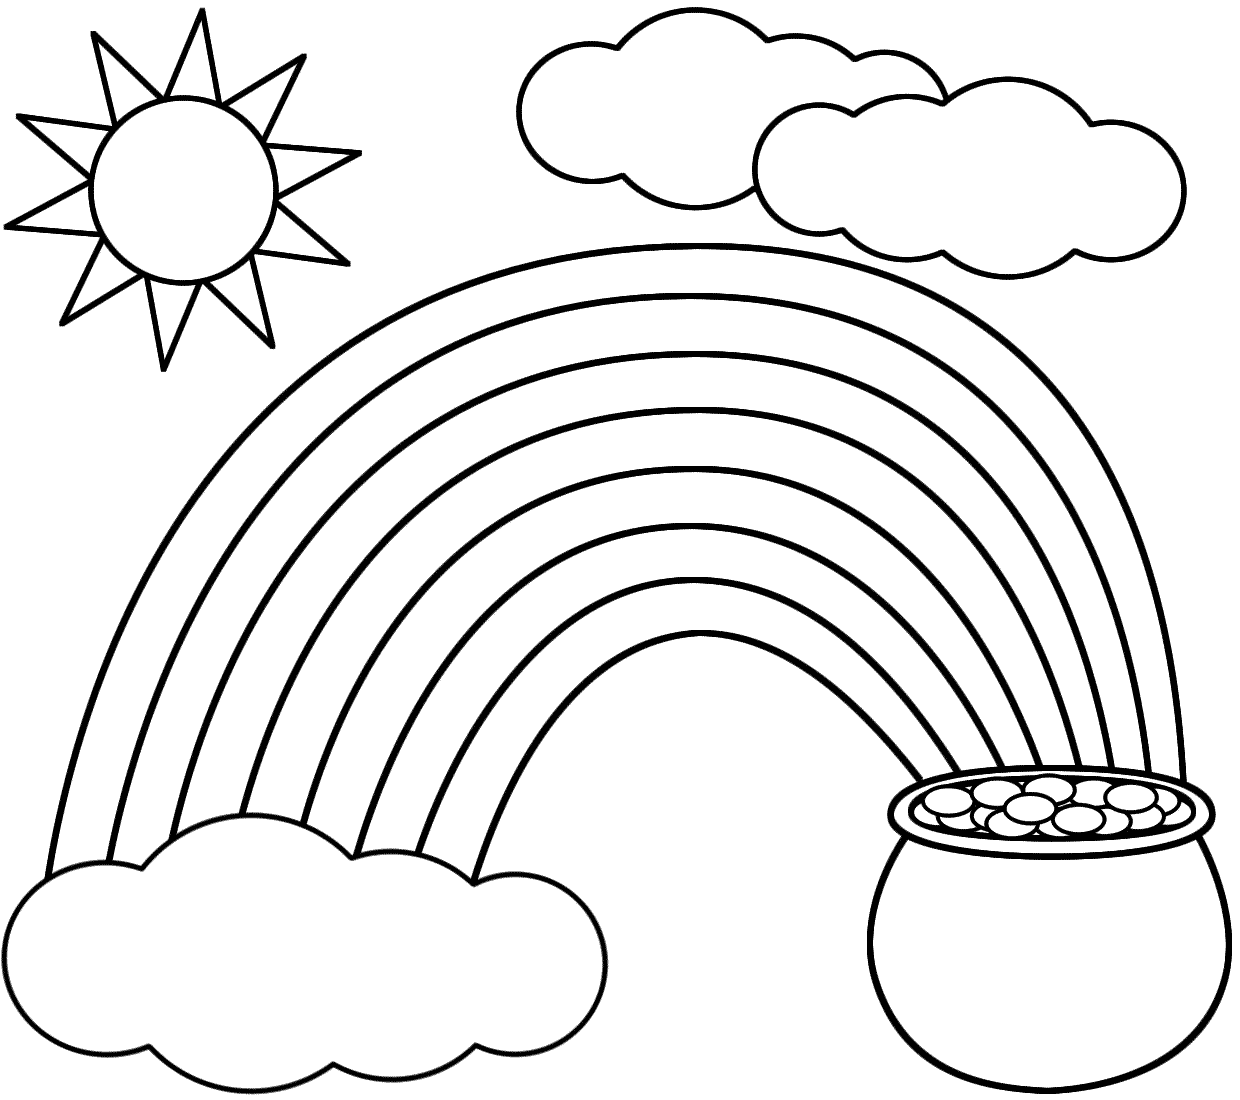 Rainbow, Pot of Gold, Sun, and Clouds - Coloring Pages | School ...